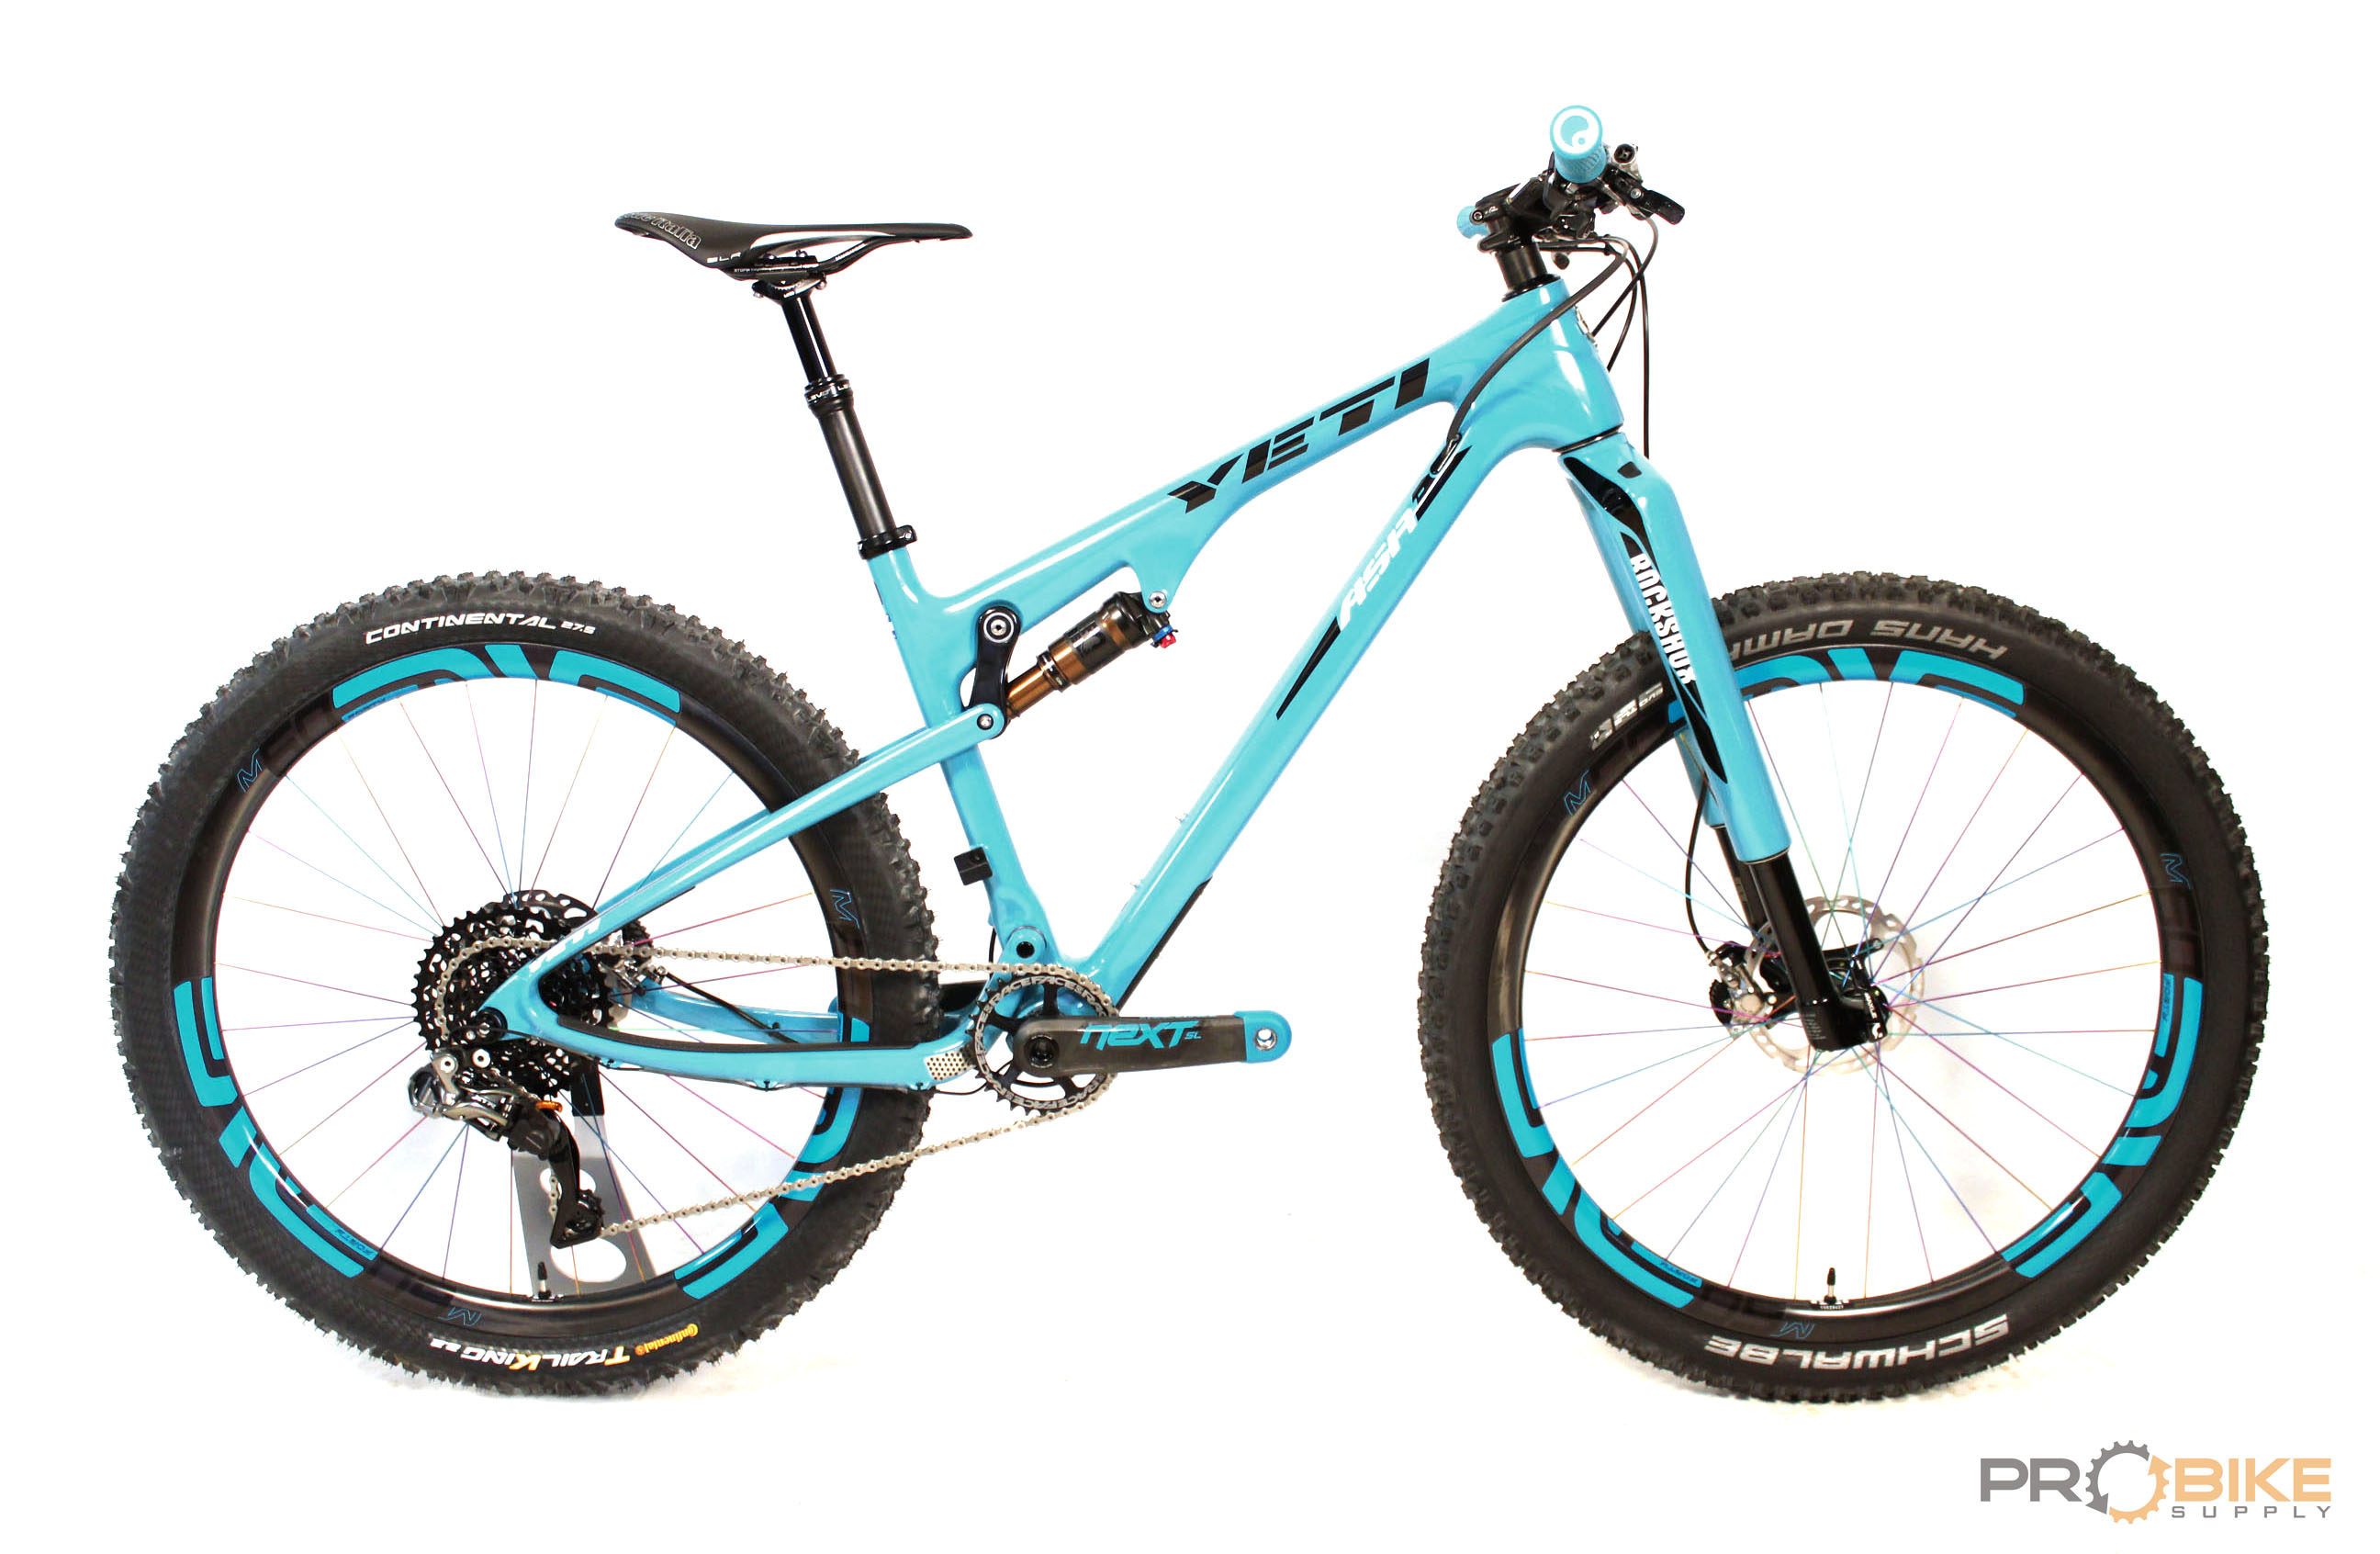 Yeti Asrc With Custom Painted Turquoise Rs 1